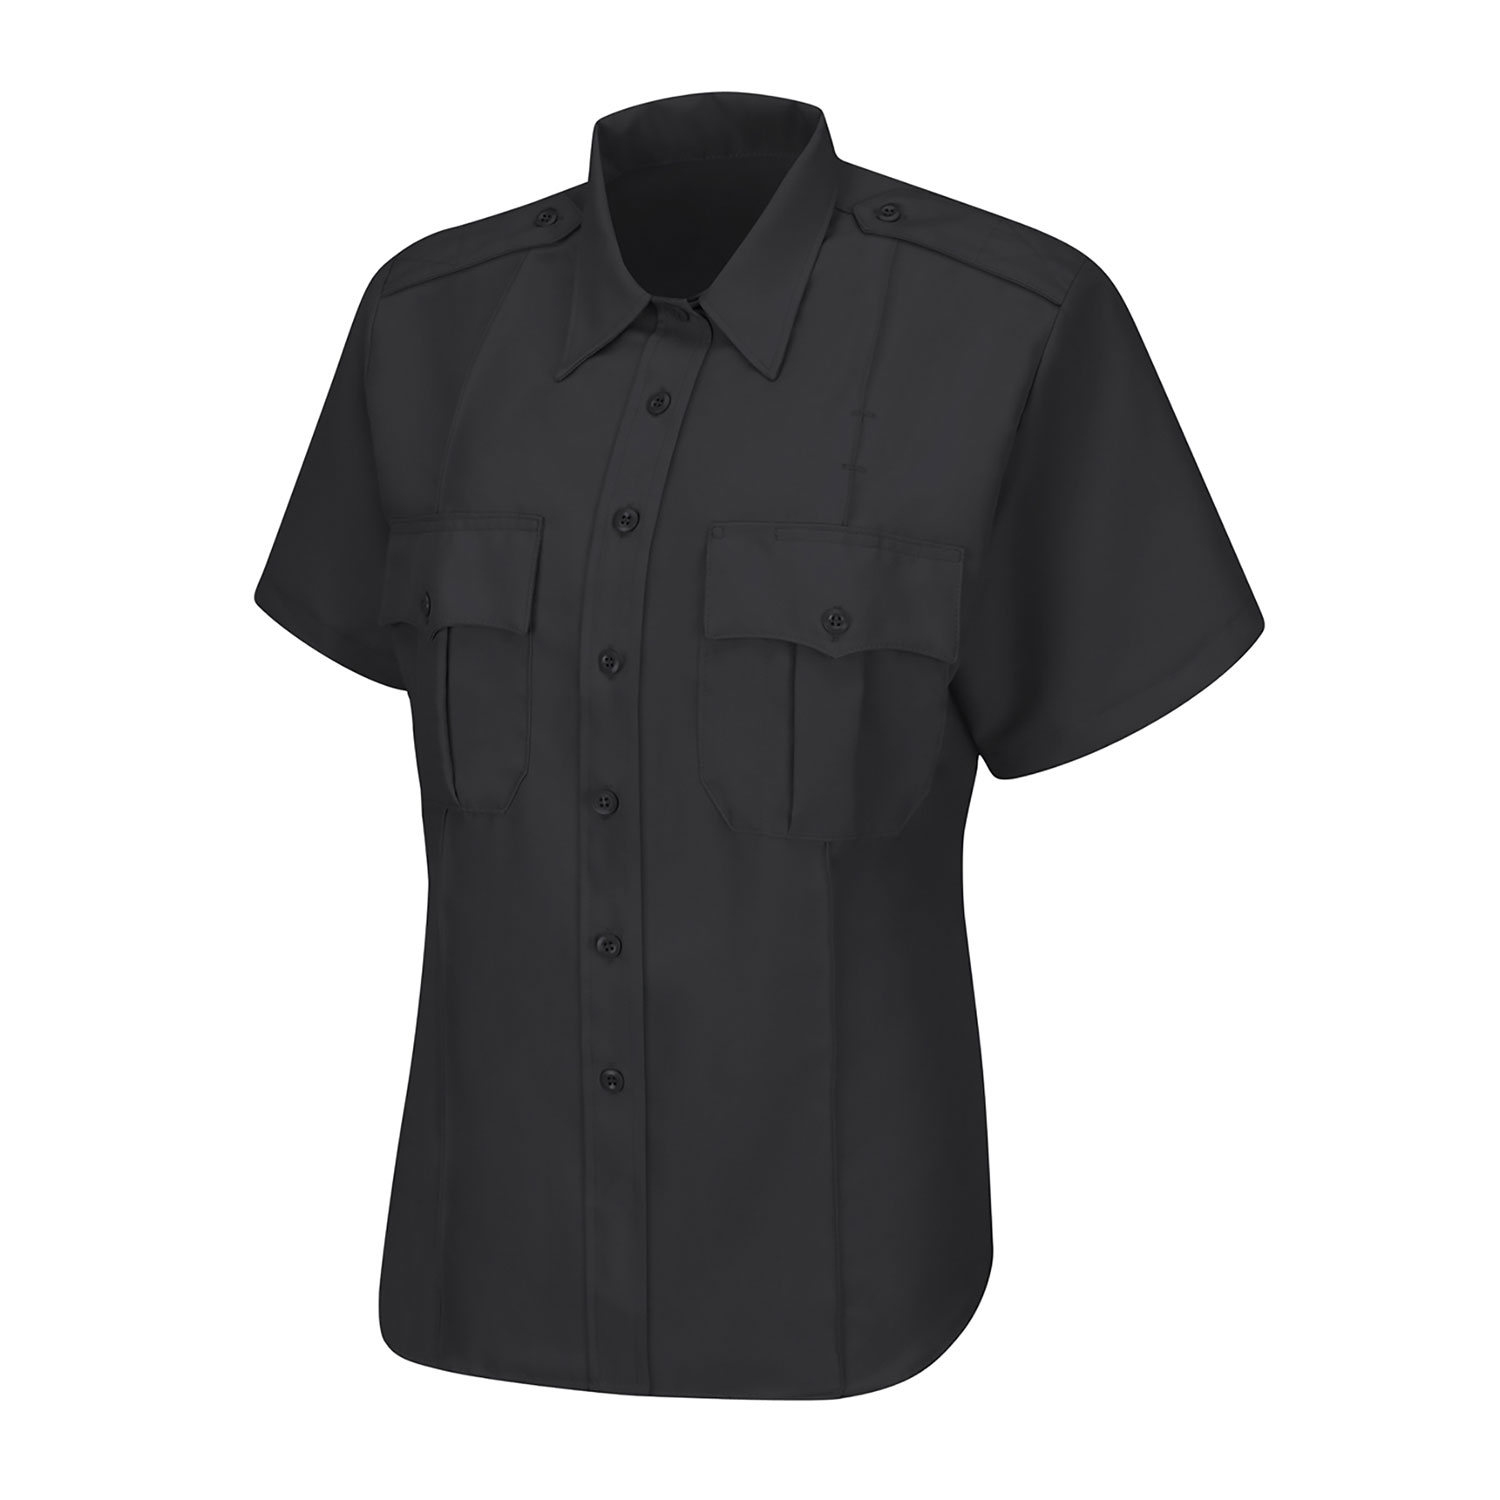 Horace Small Women's Short Sleeve Sentry Zipper Shirt